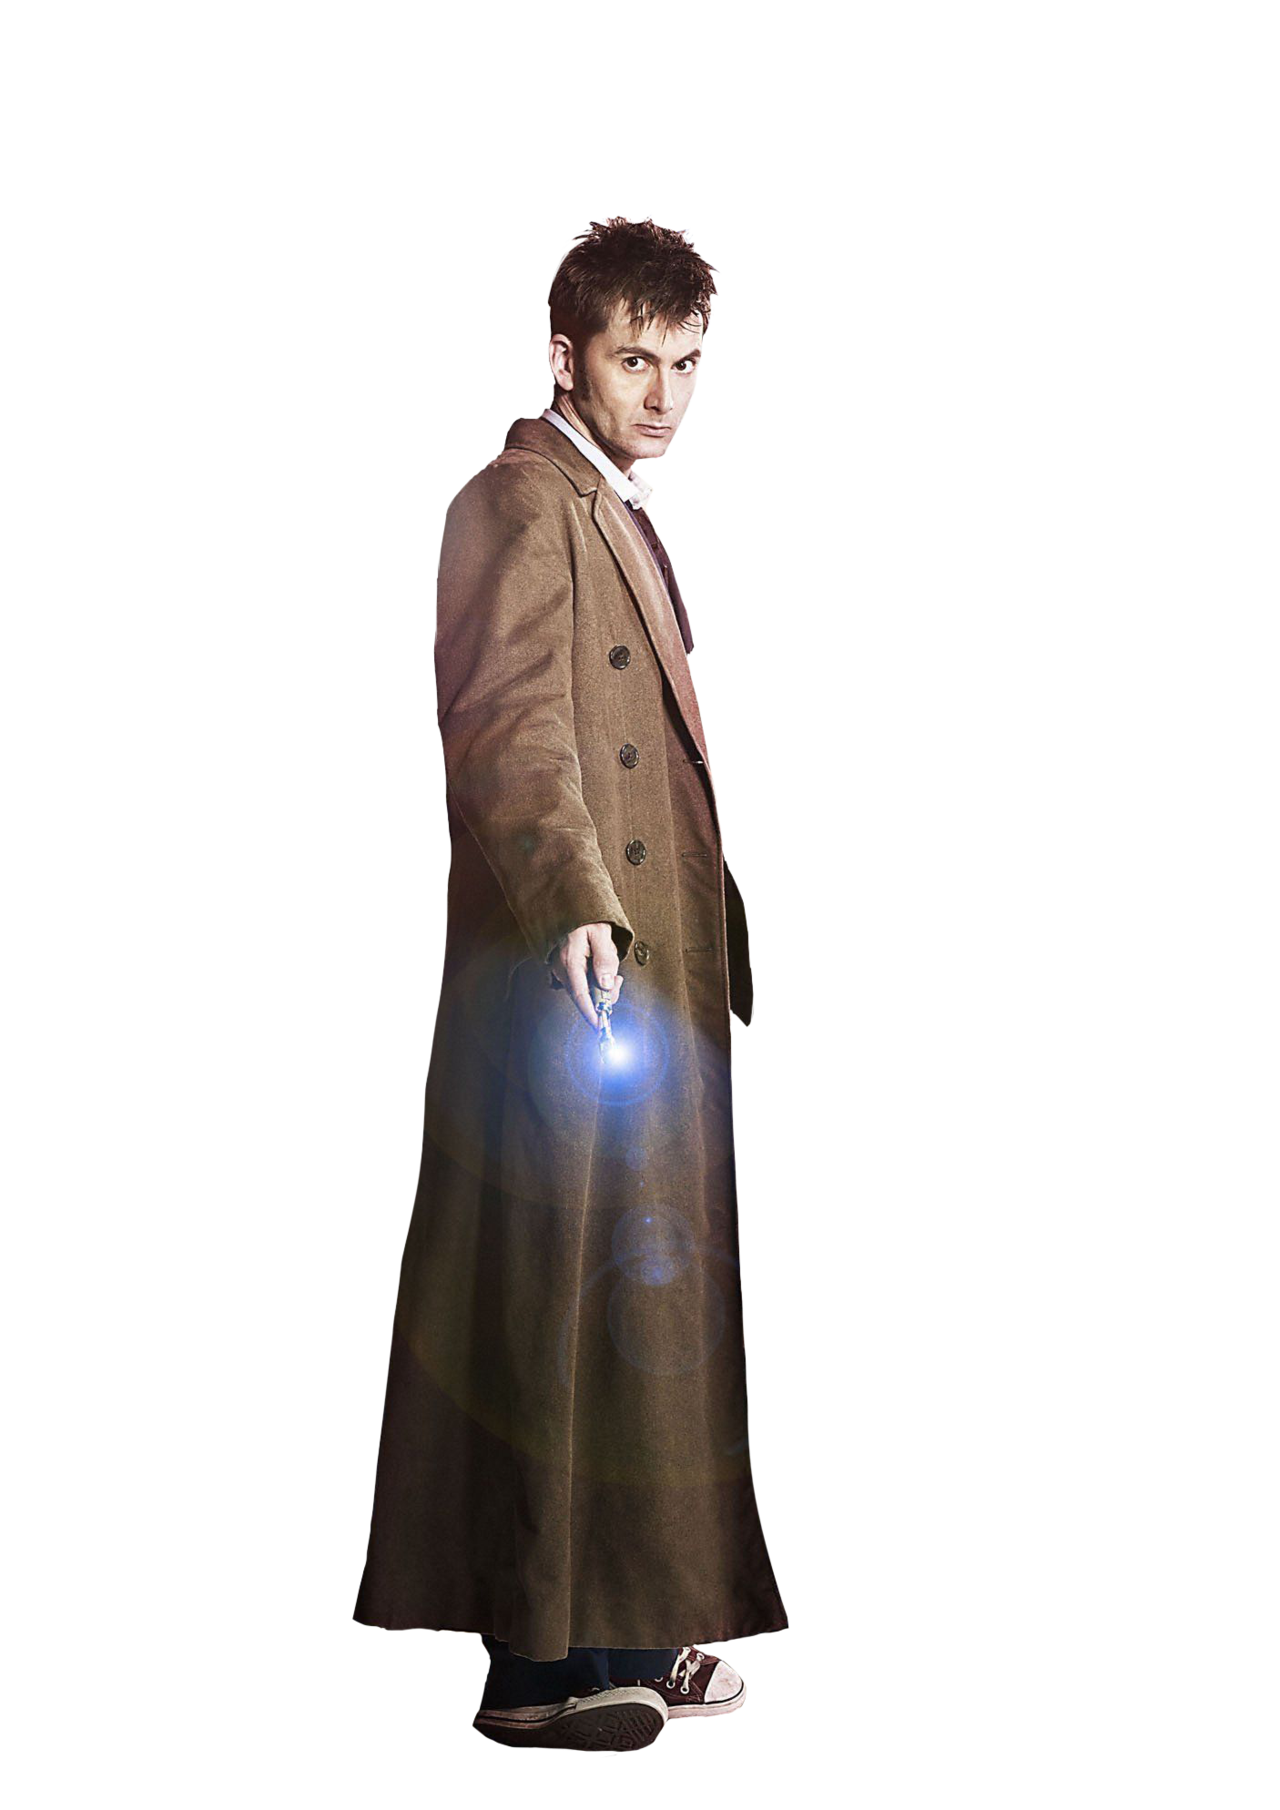 Doctor who png. Image david tennant as